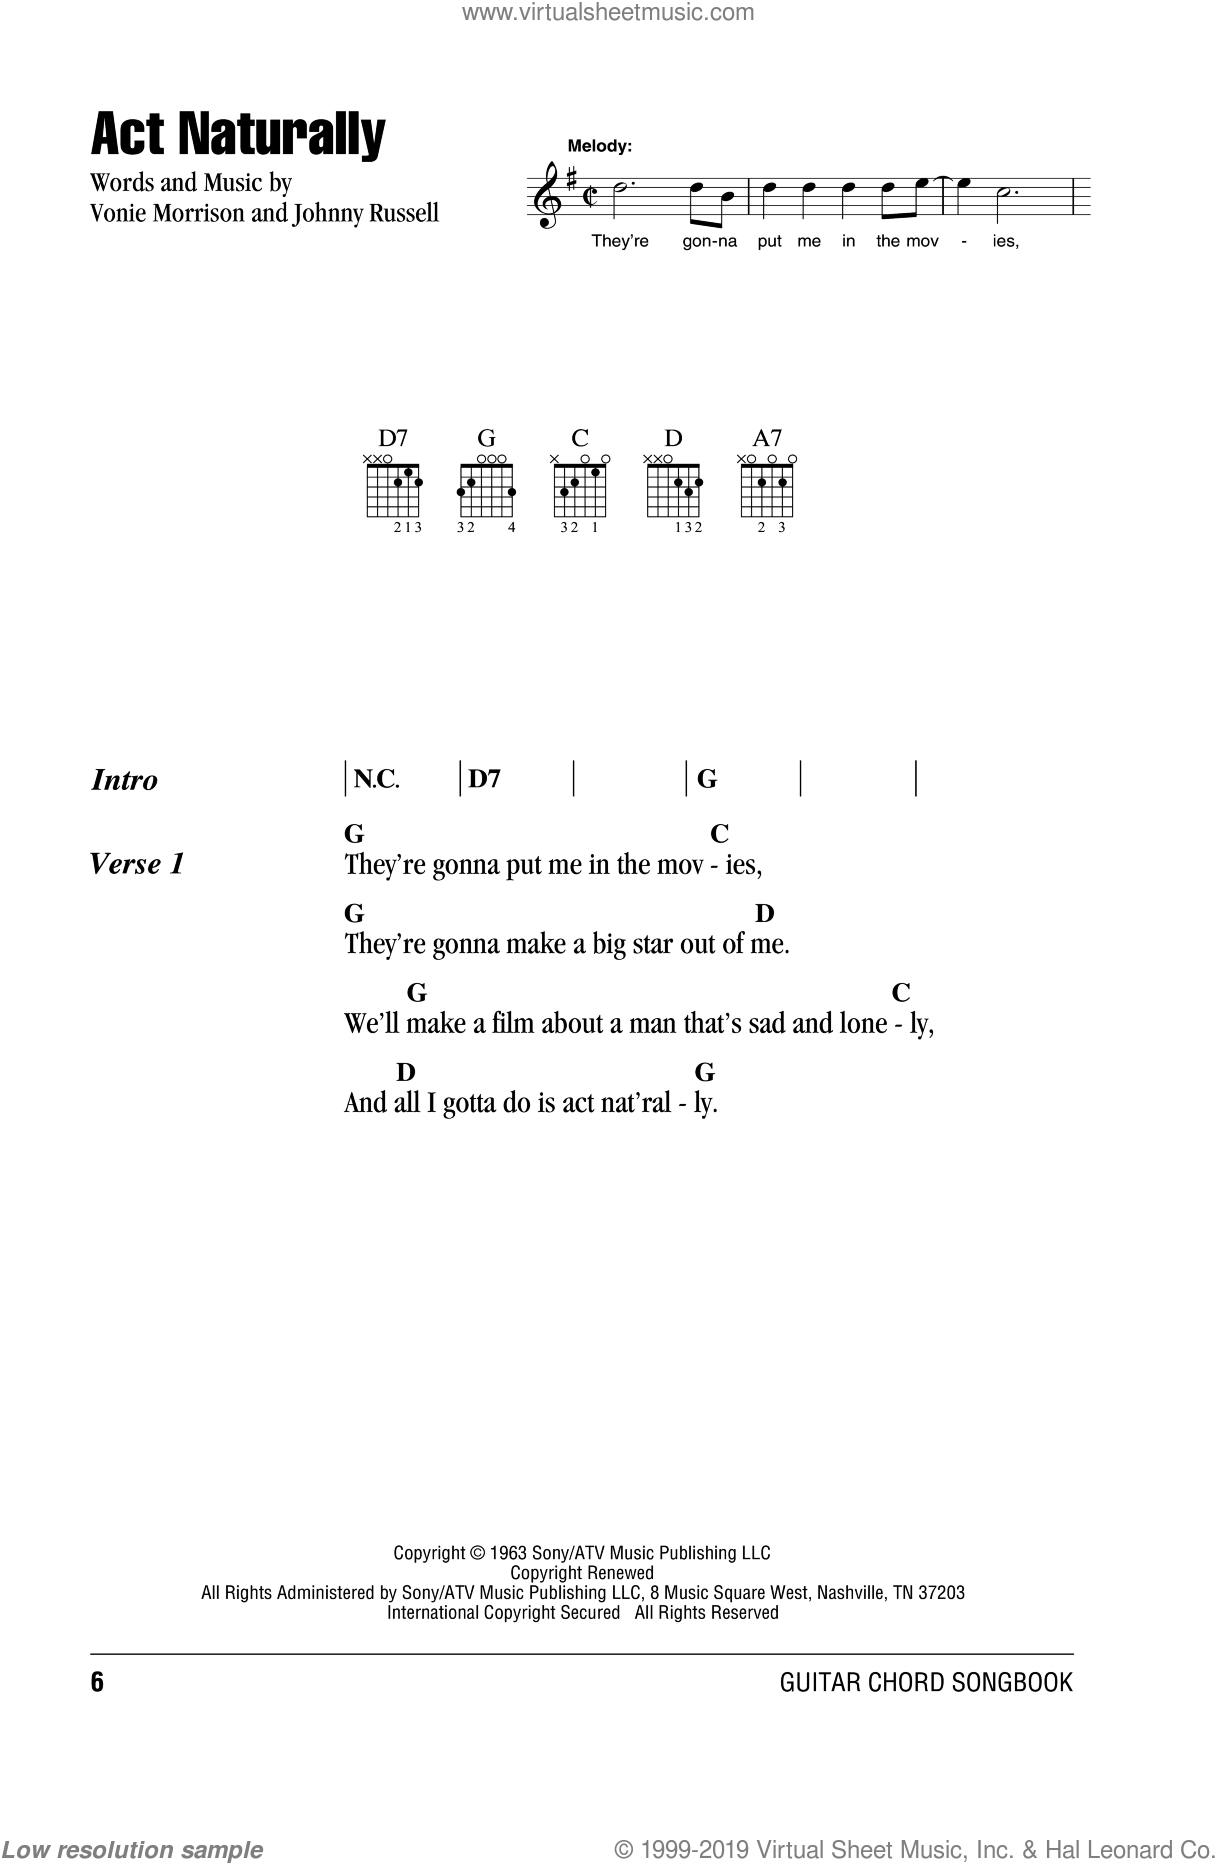 Act Naturally sheet music for guitar (chords) by Vonie Morrison